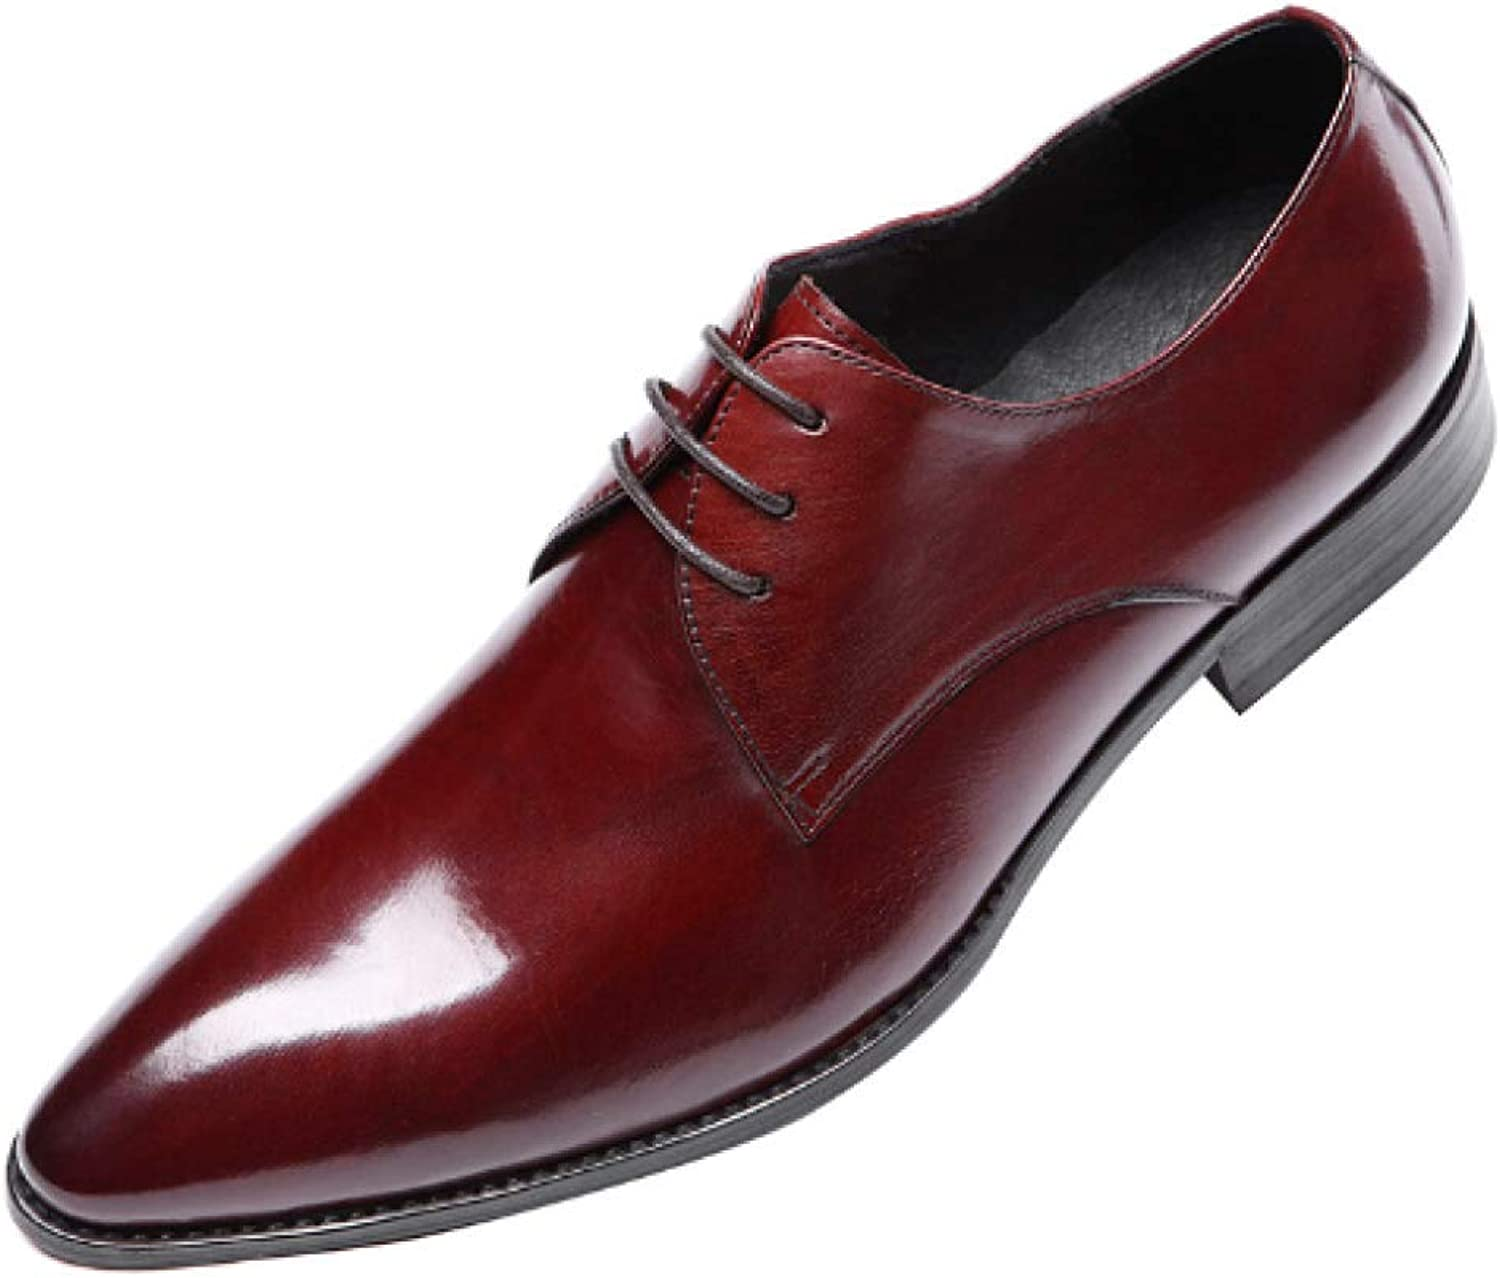 NIUMT Business,Daily Work,Pointed,Deodorant,wear-Resistant,Shock Absorption,Breathable,Lace-up shoes,Casual